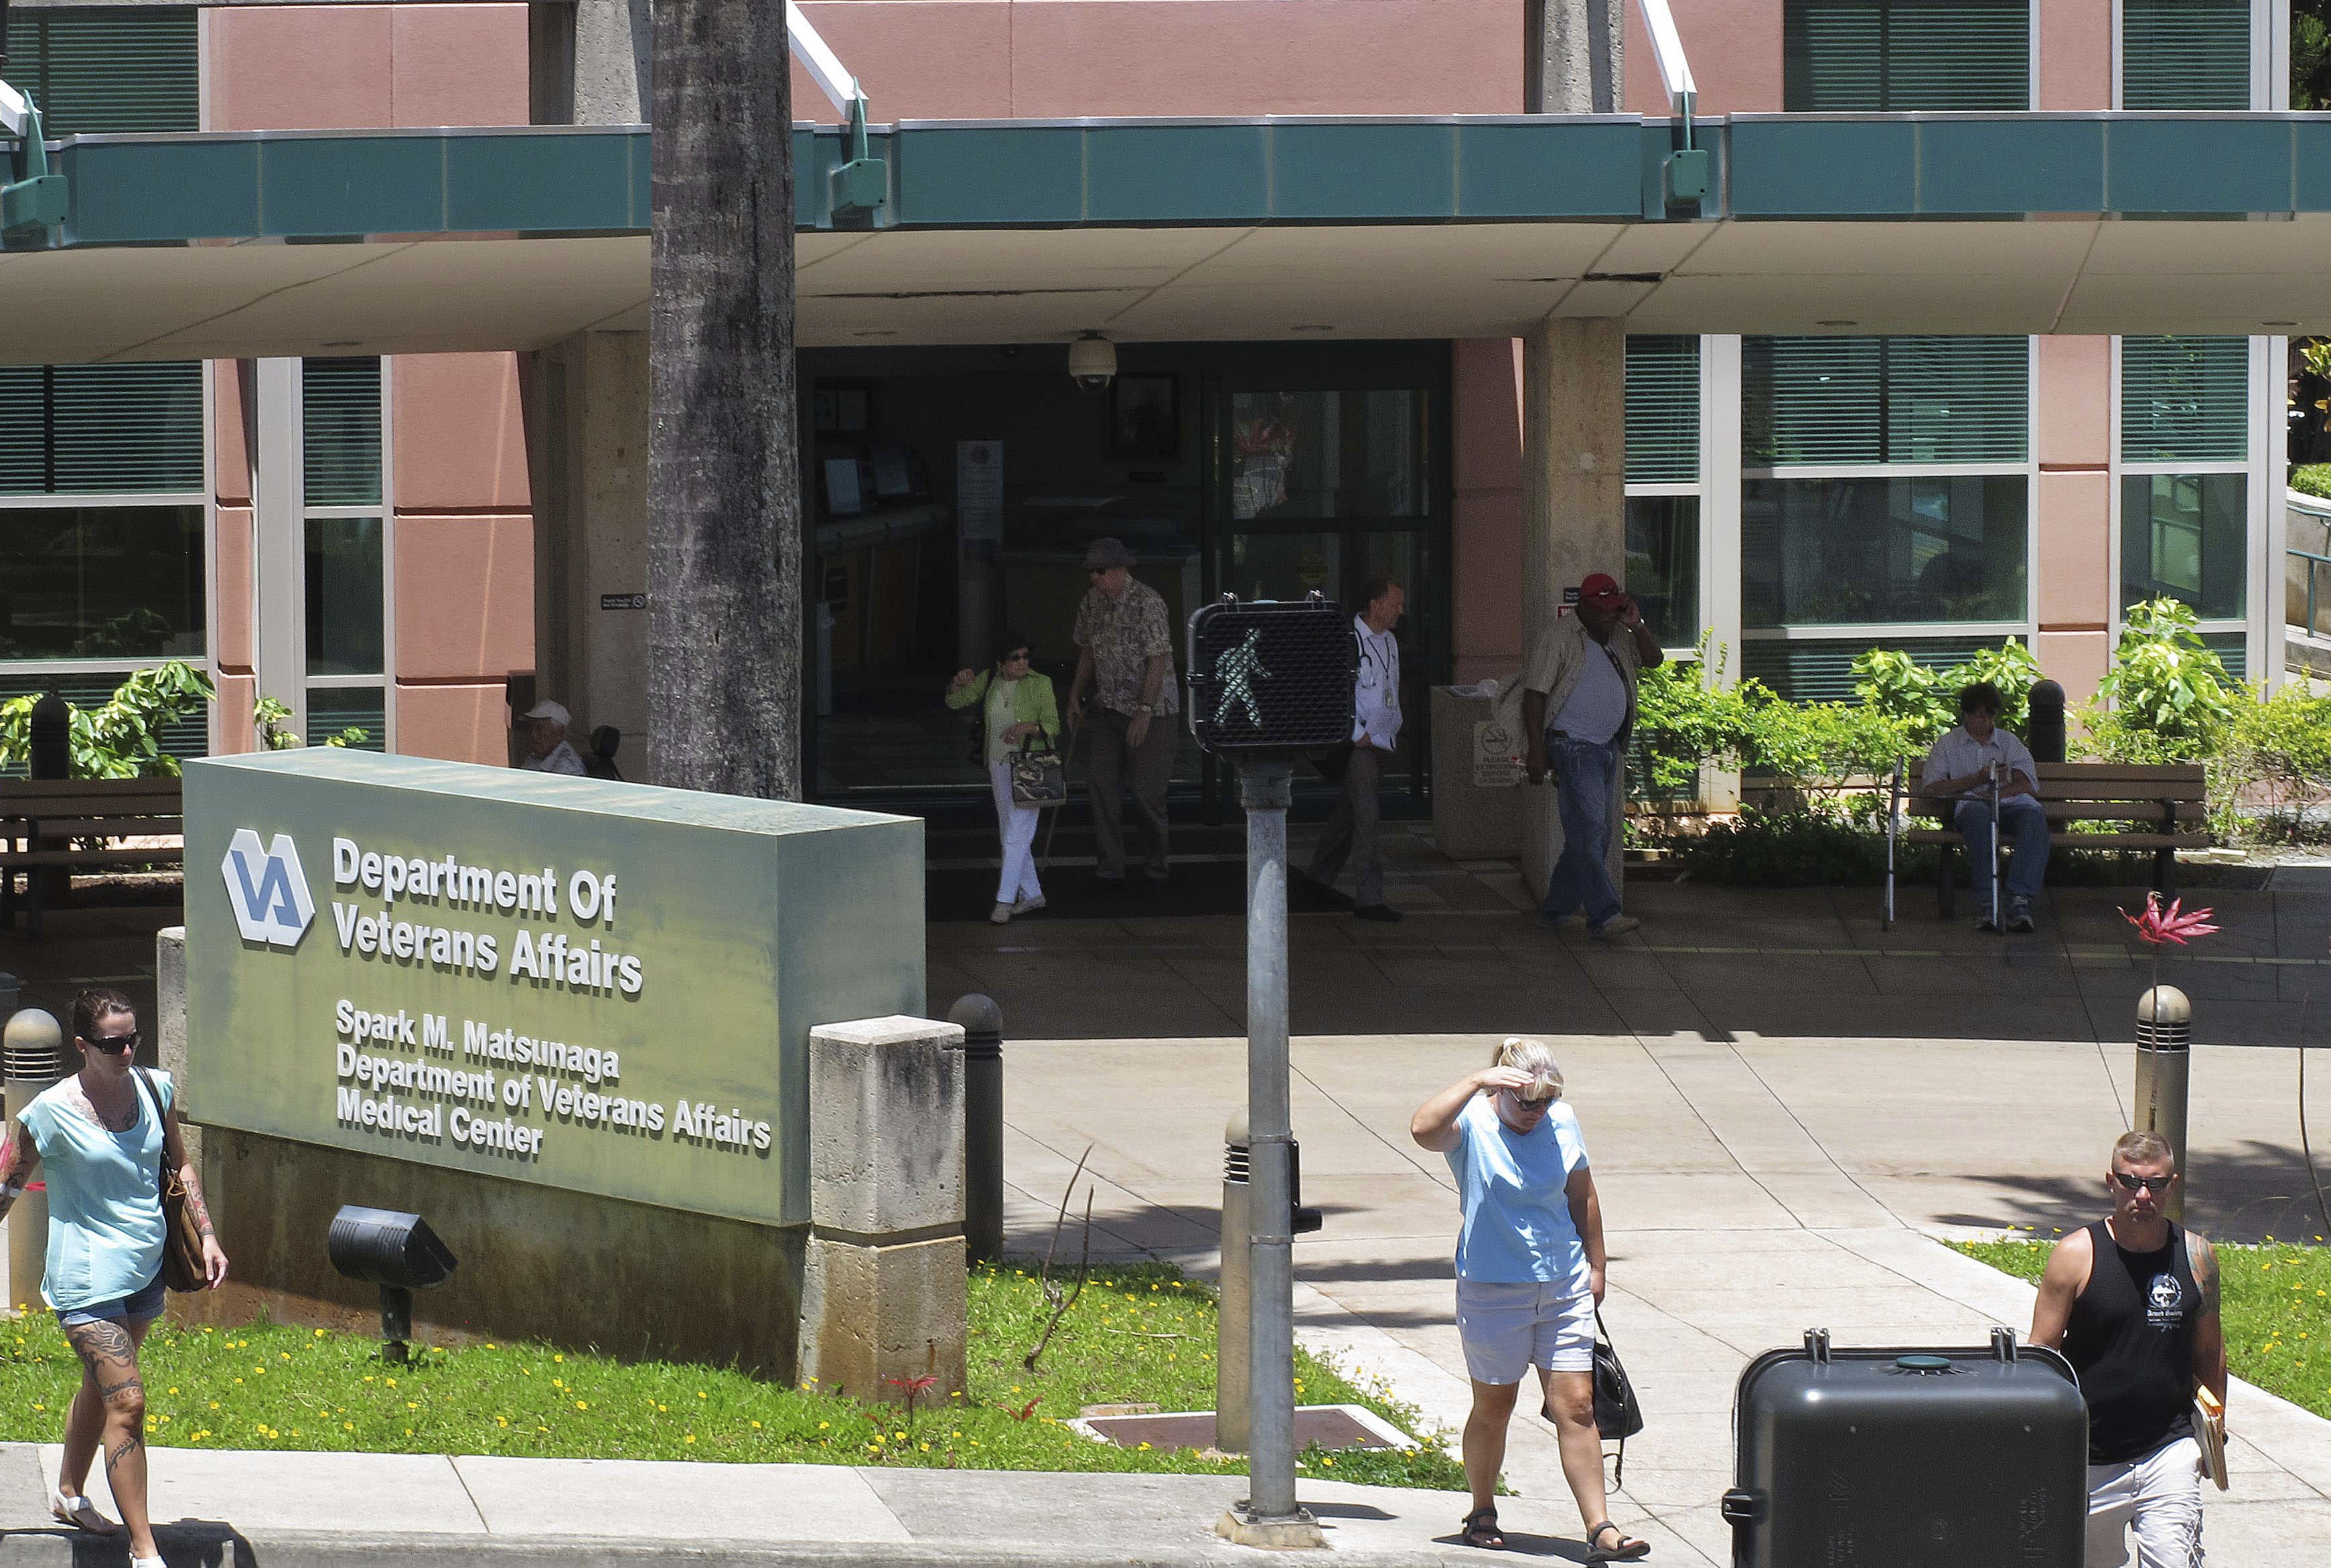 Report: Hawaii supervisor manipulated veterans' benefit data